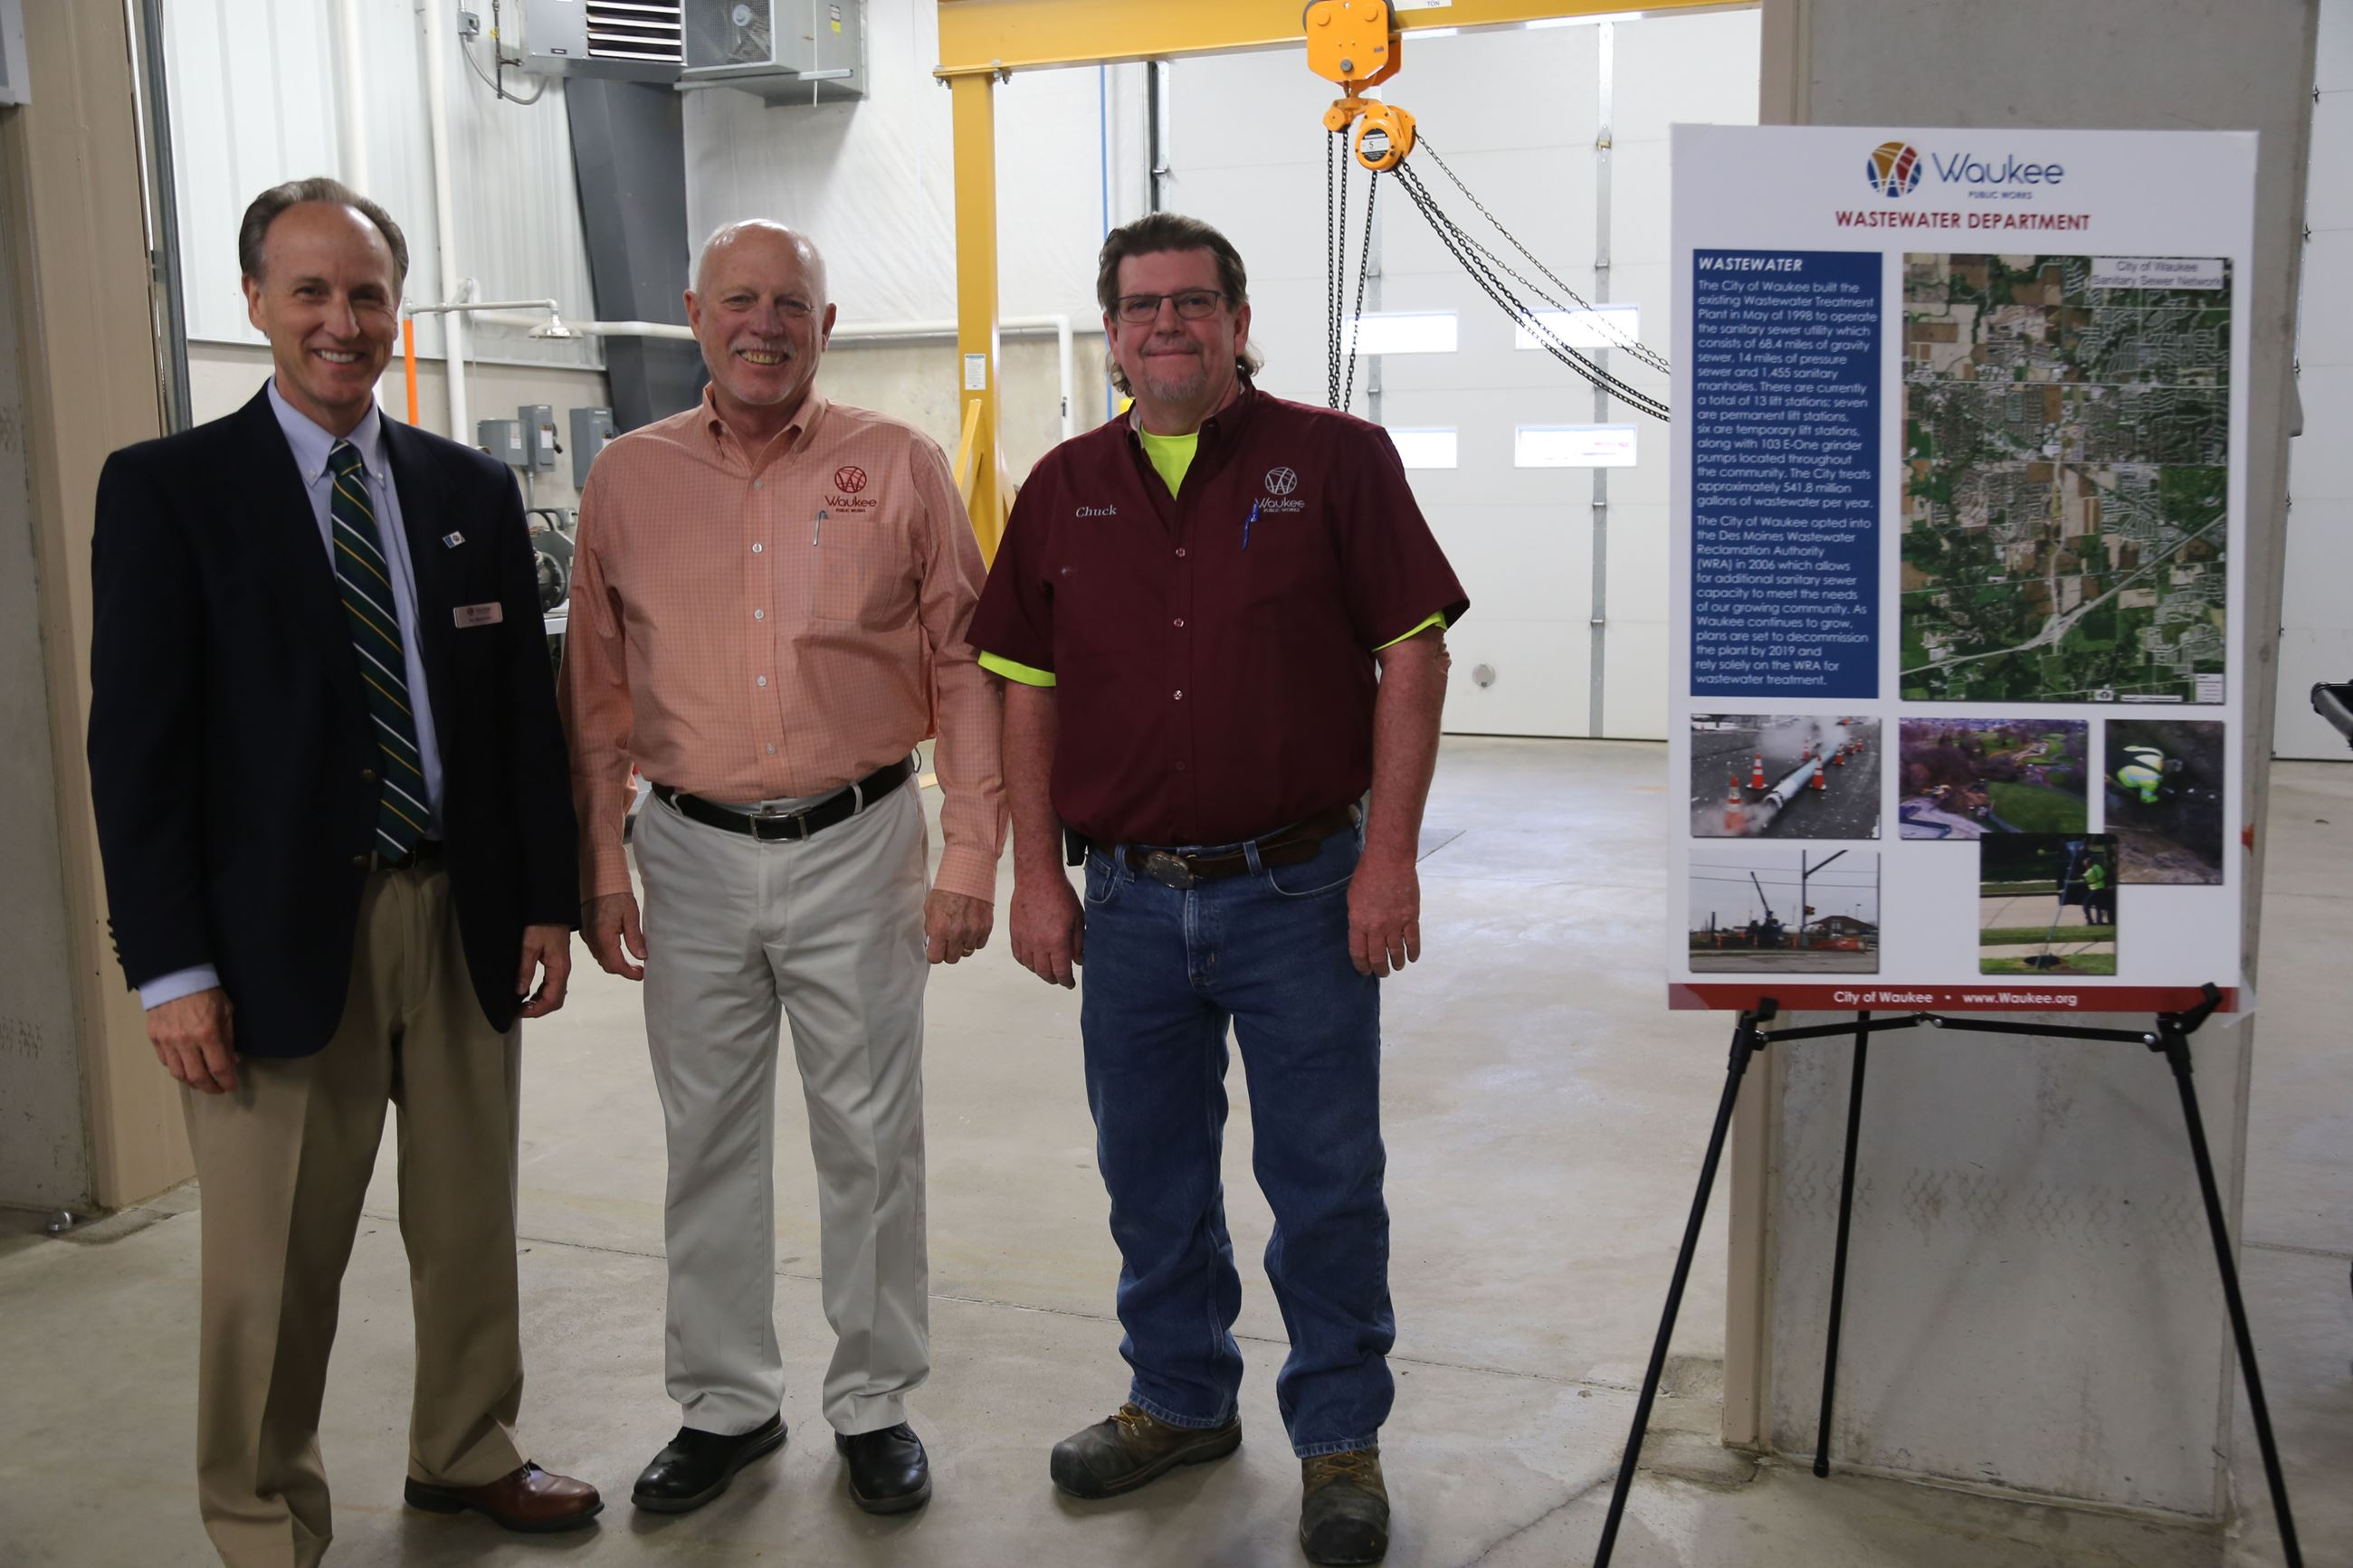 City Admin Tim Moerman, Public Works Director John Gibson, Water-WasterWater Superintendent Chuck Wa